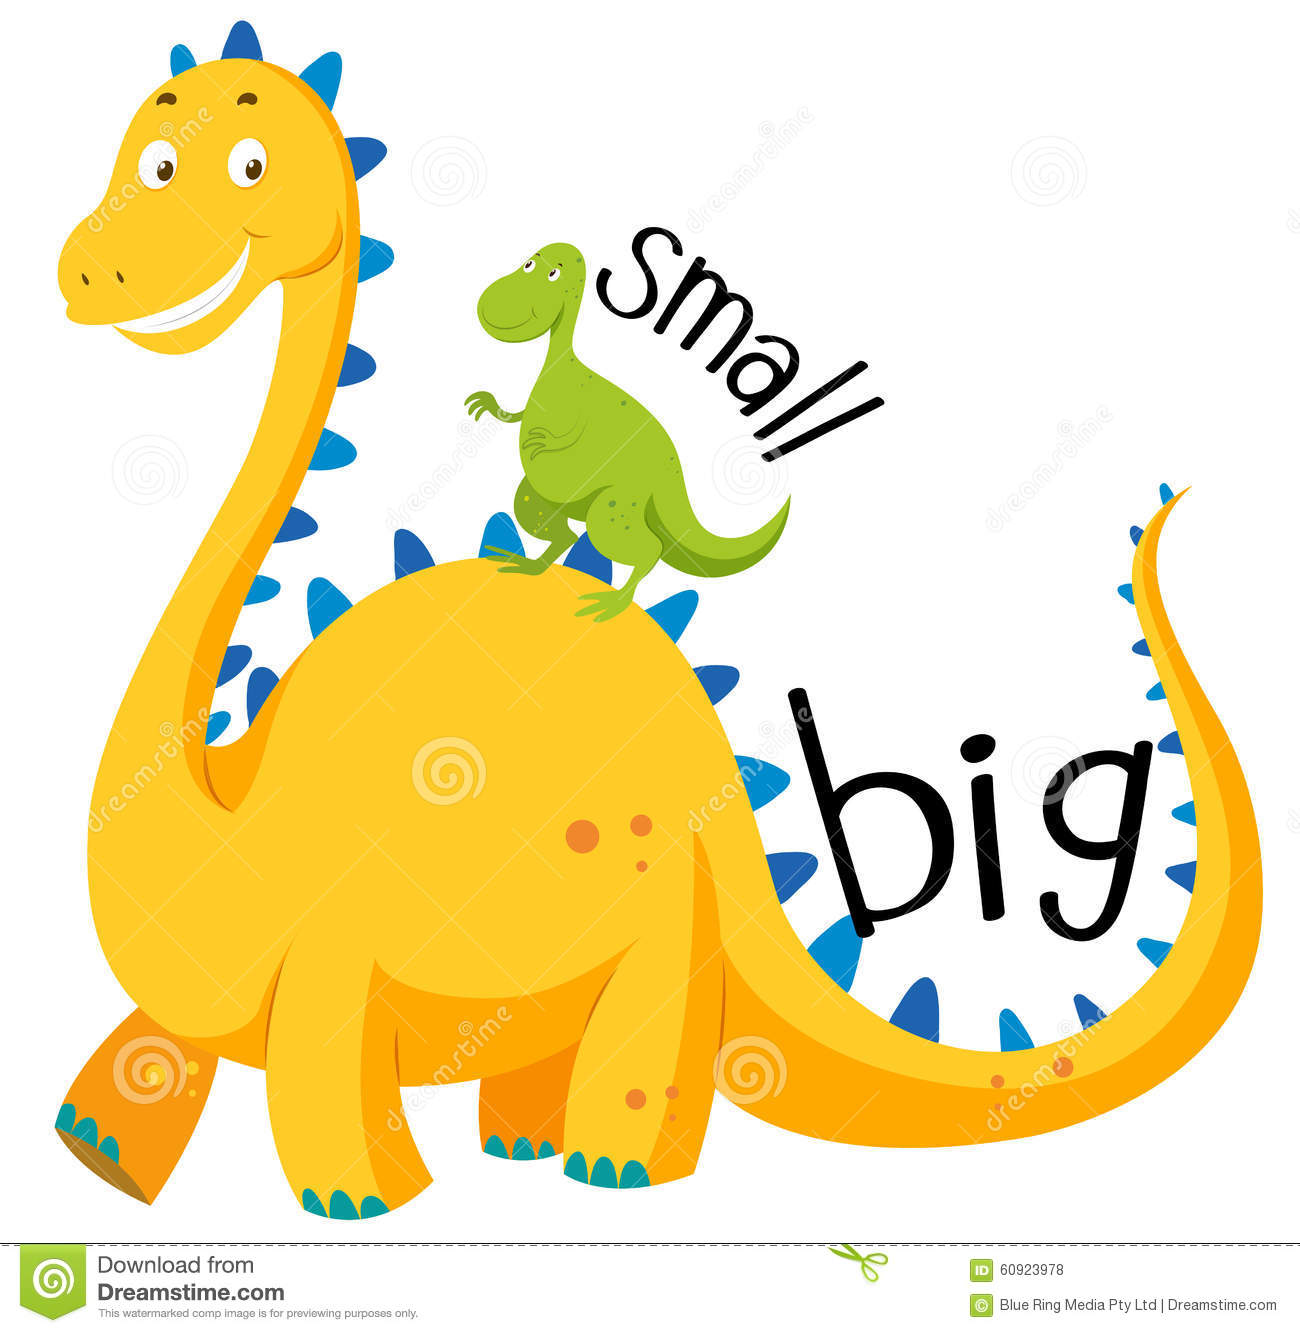 Big and small objects clipart graphic library Big and small objects clipart - ClipartFox graphic library